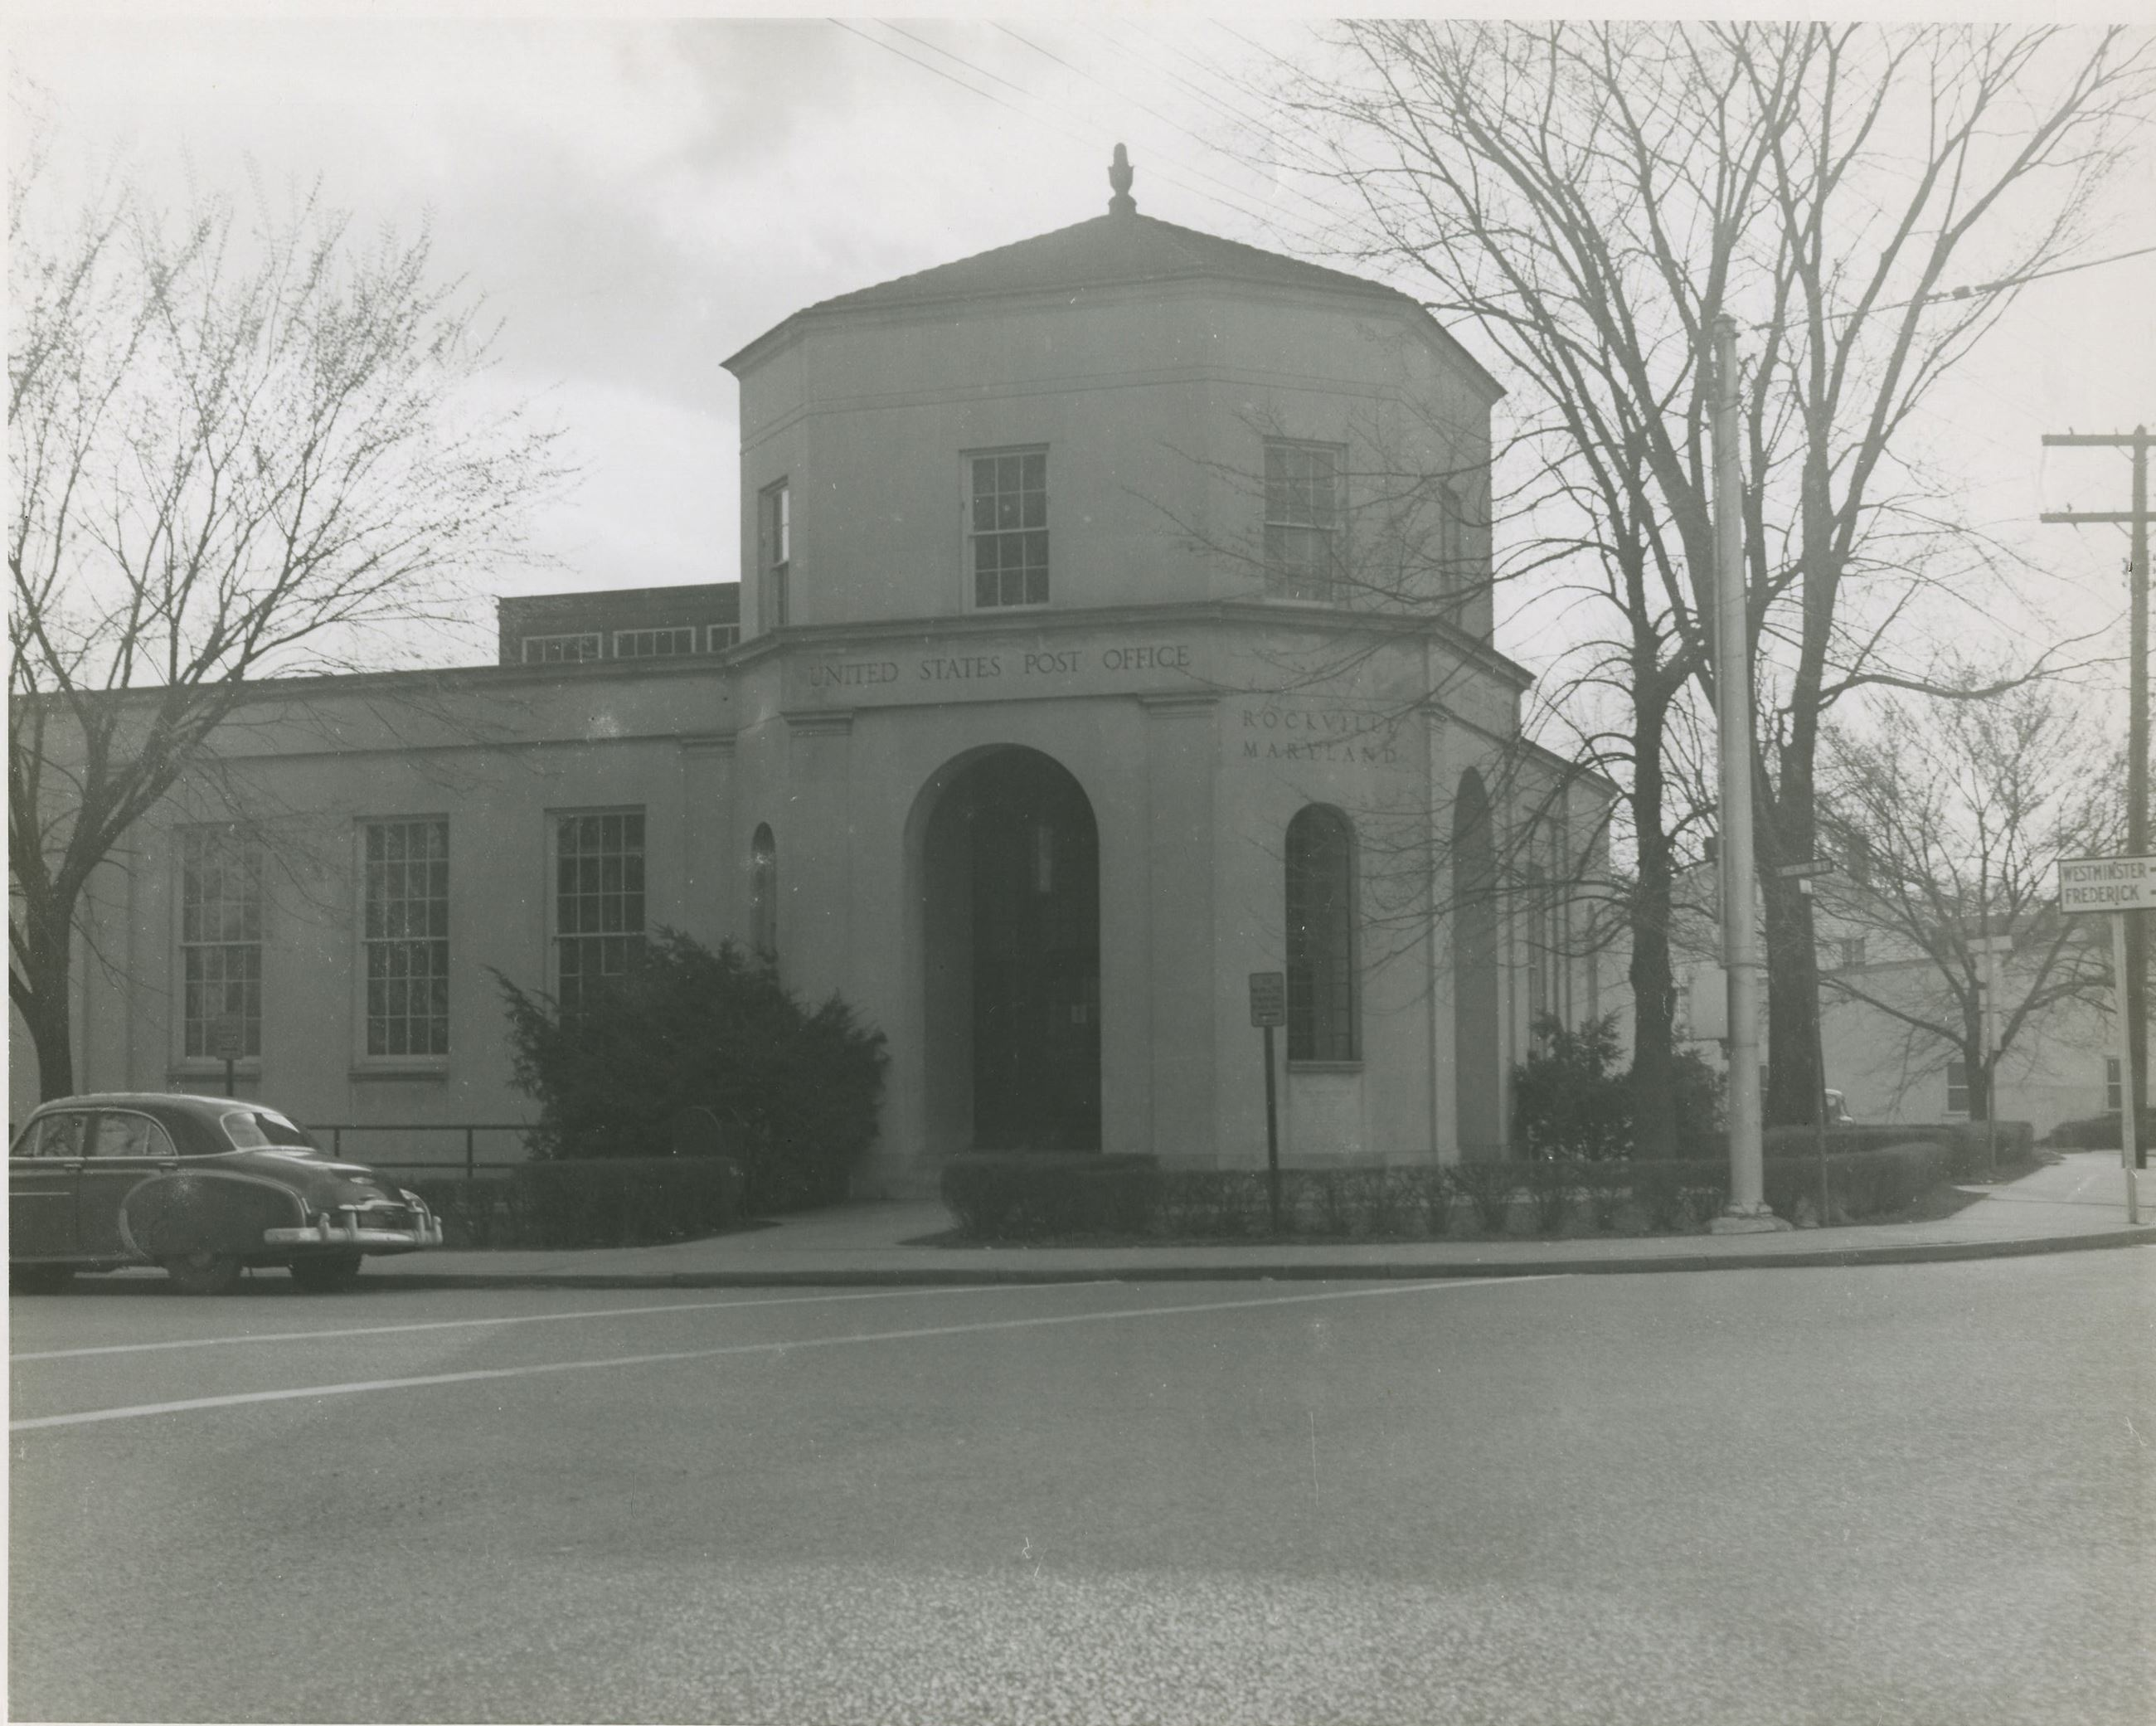 Historical Photo of Post Office